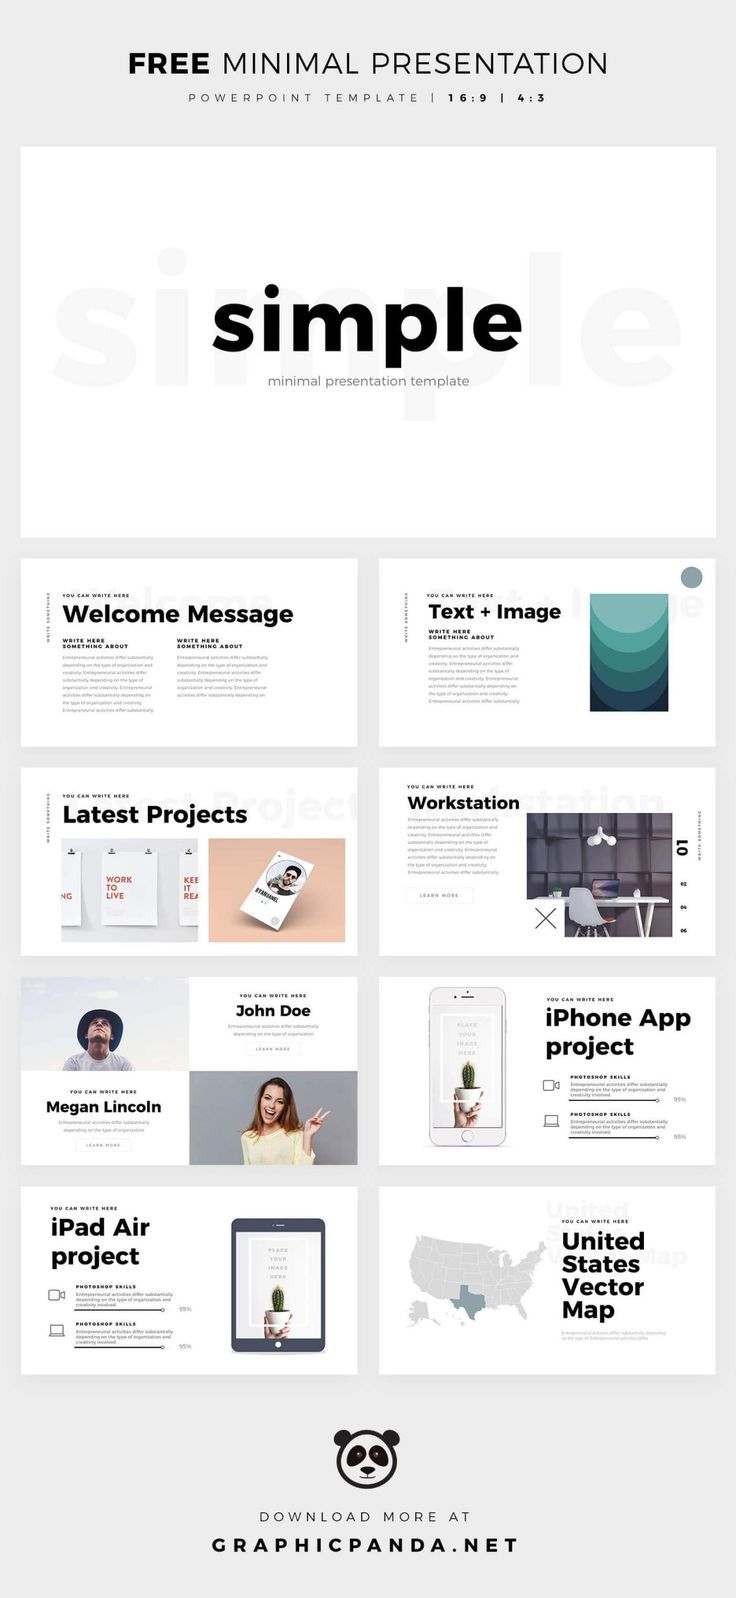 Free powerpoint templates free ppt template pinterest template free powerpoint templates toneelgroepblik Choice Image